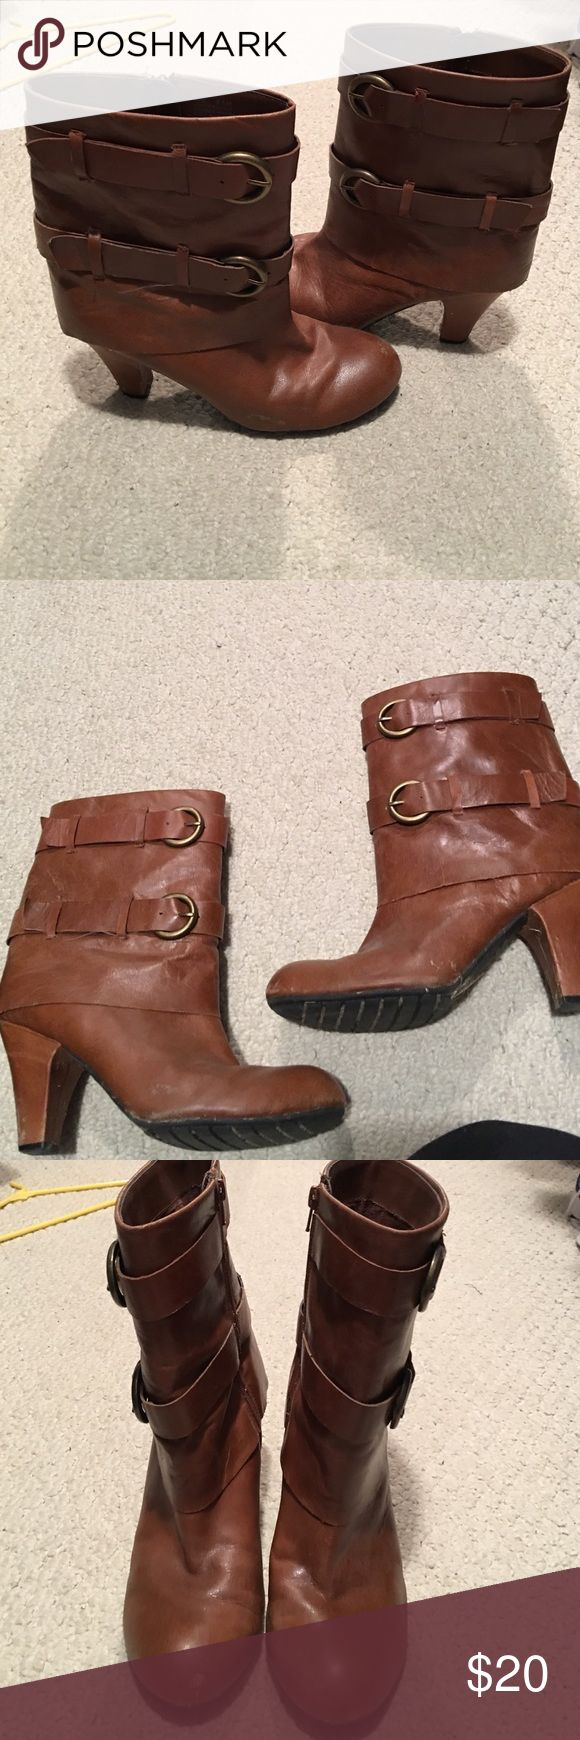 Women's brown boots size 9.5. Women's brown heeled boots size 9.5. Some sign of wear a few scuffs but still looks good. ME TOO Shoes Ankle Boots & Booties